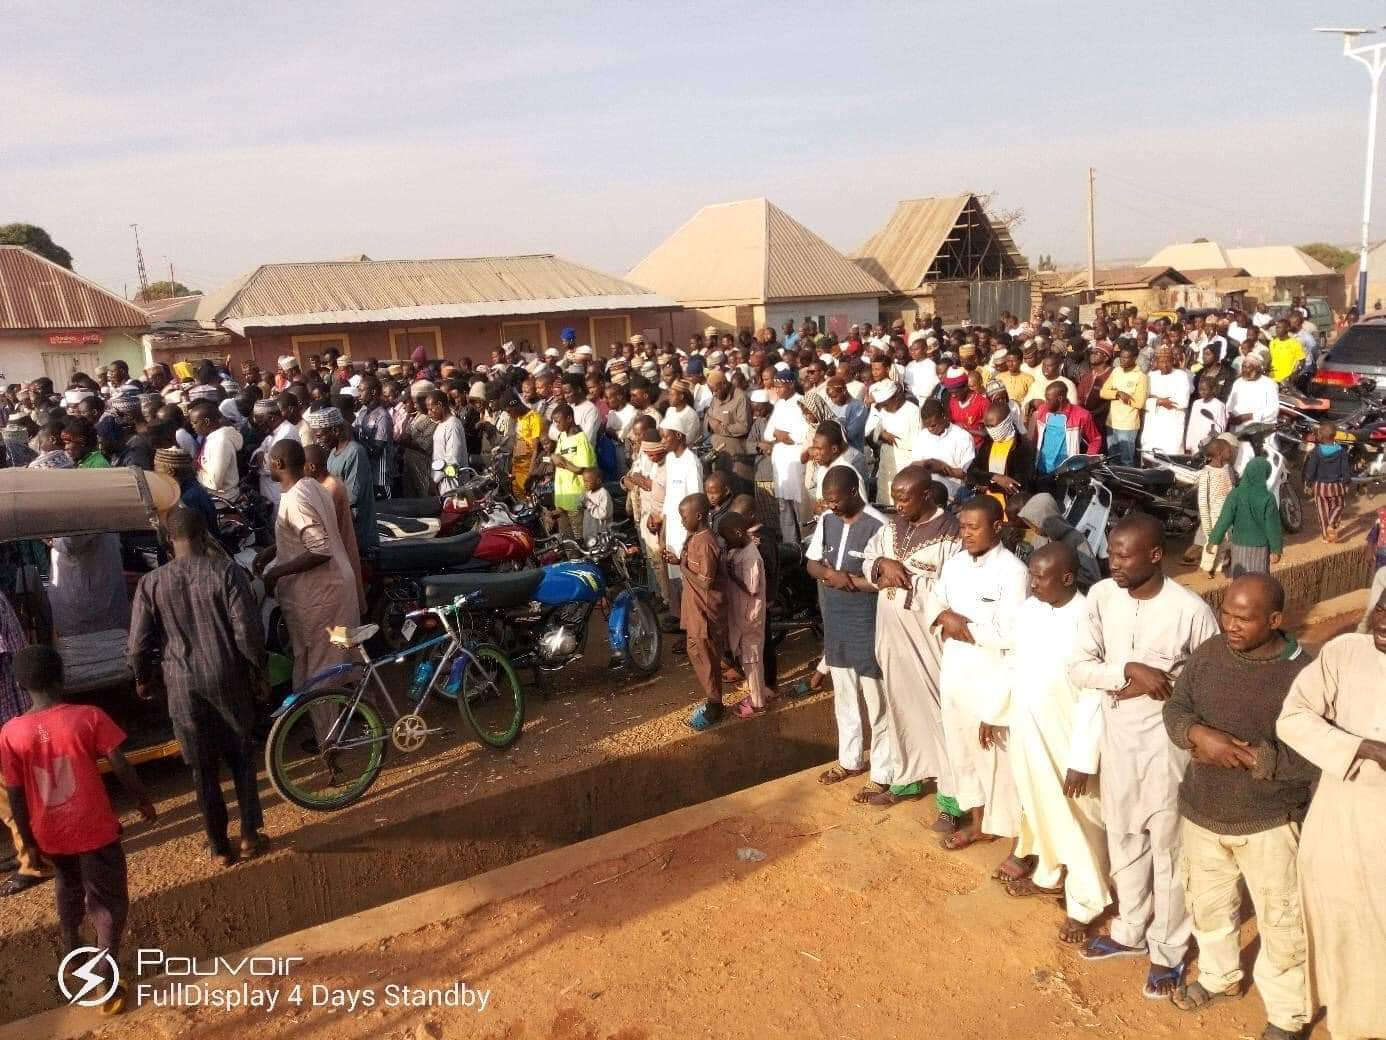 mamoth crowd at the funeral prayers for the remains of late Rabiu Auwal in Rigasa